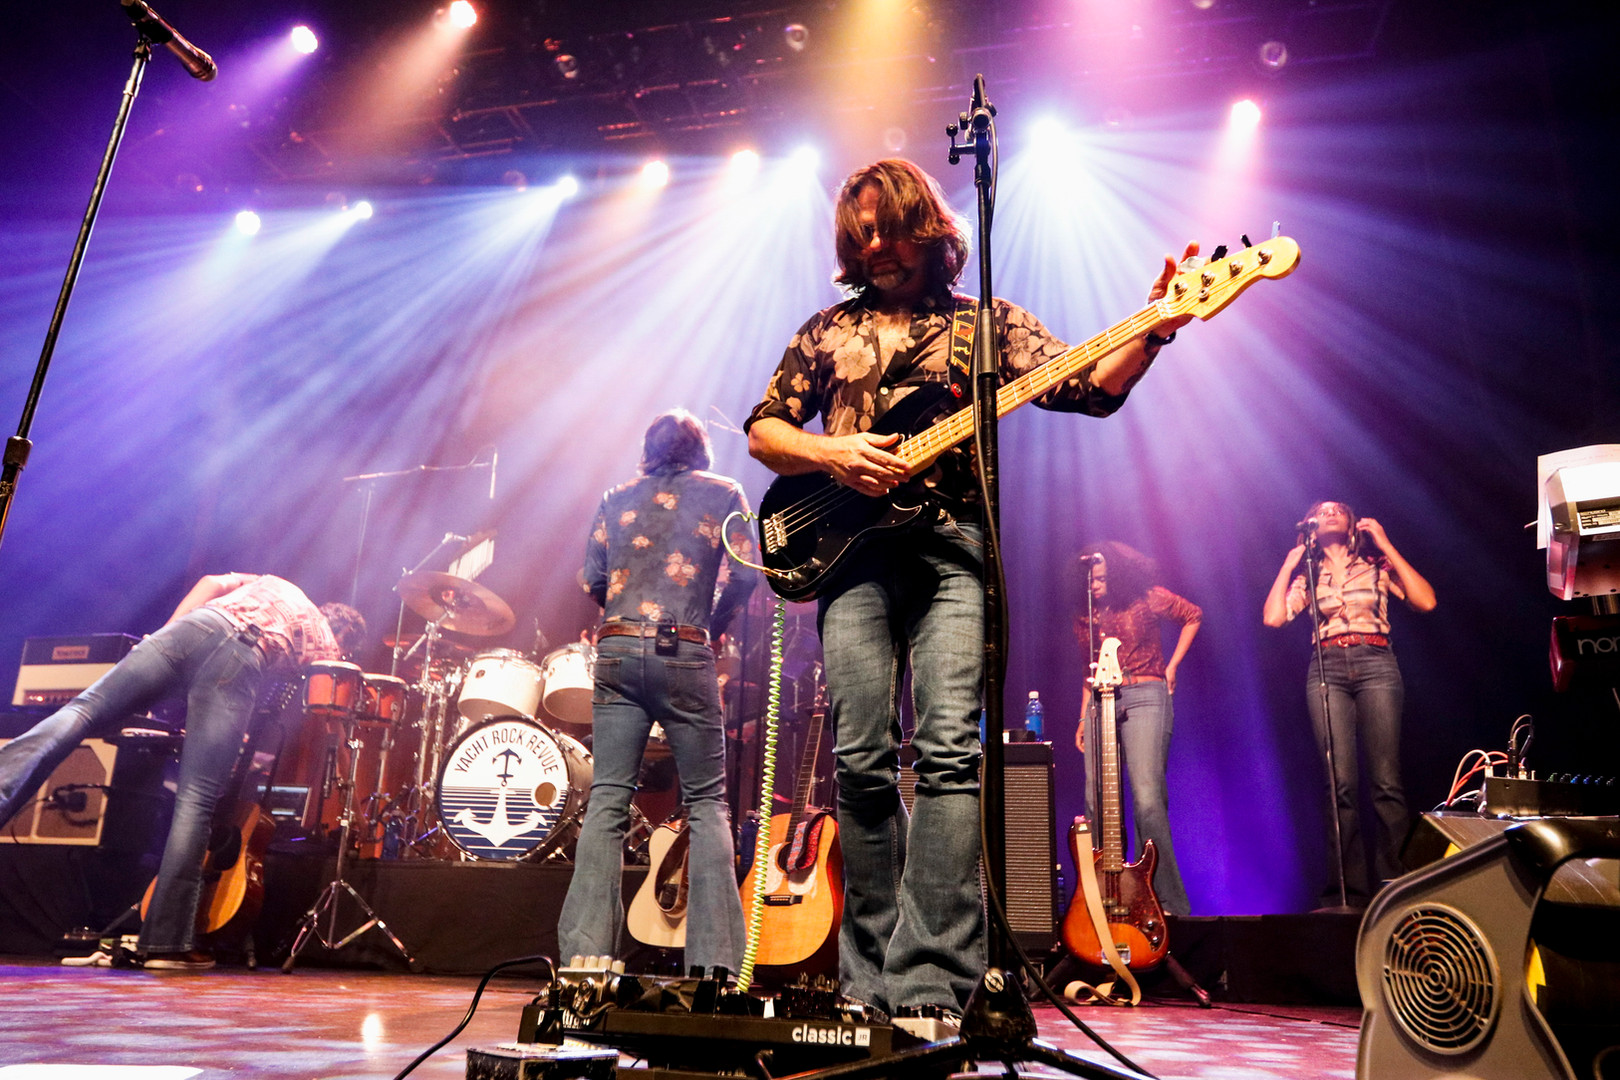 Yacht Rock Revue tunes instruments between songs while playing at the sold out Georgia Theater in Athens, Georgia on Friday, Sept. 6, 2019. The band brings back the '70s and '80s with covers of hit songs, sunglasses at night, bell-bottom jeans, and some original songs that keep to the sing-along, soft rock genre of the era.